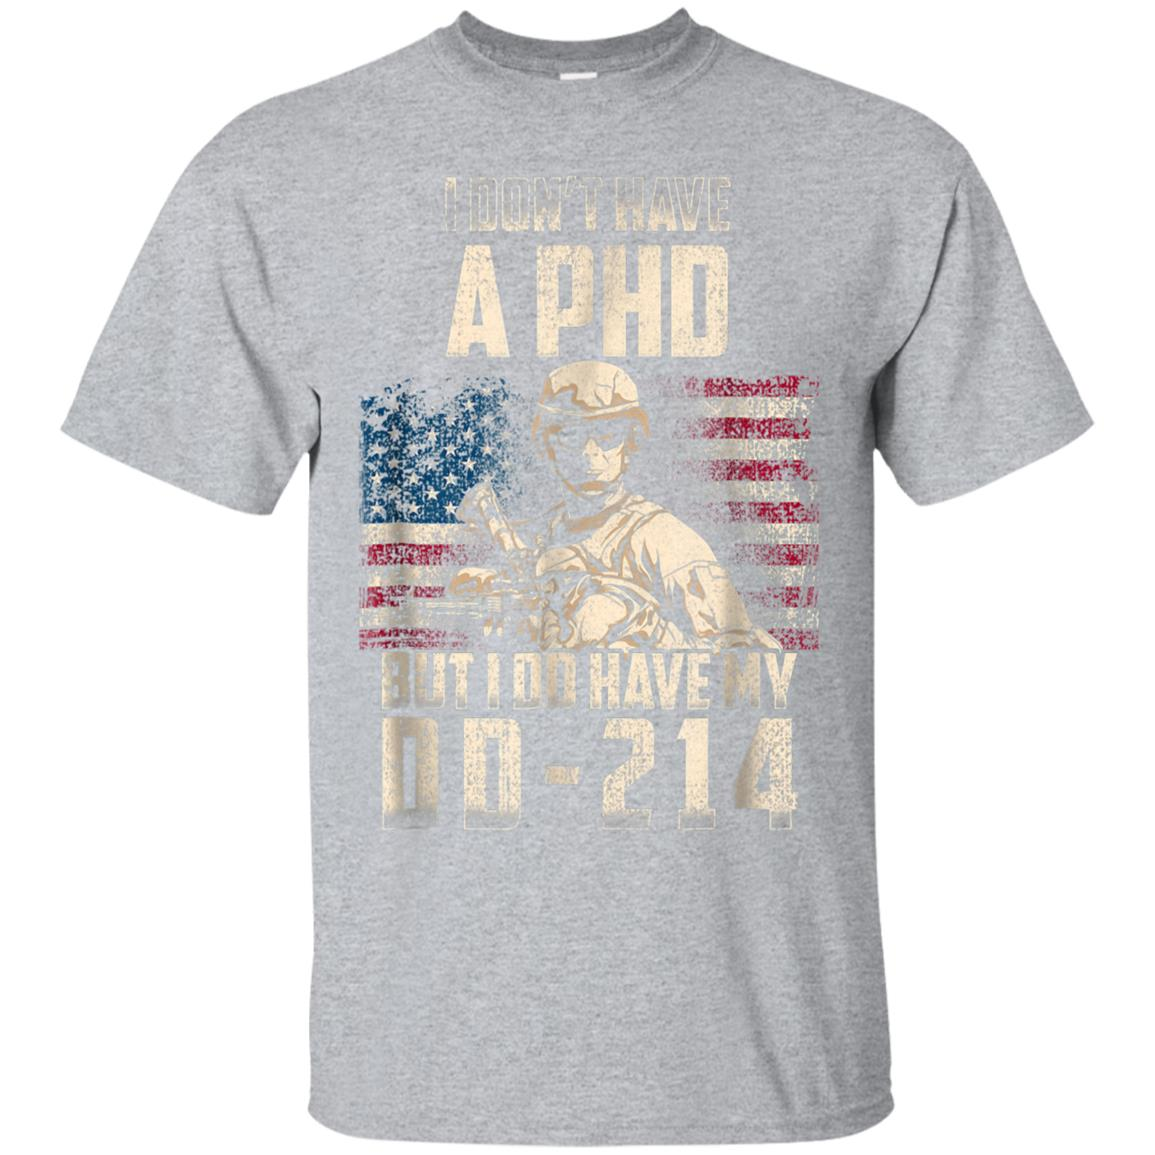 I Do Have My DD-214 Distressed Shirt Veteran's Day Gift 99promocode